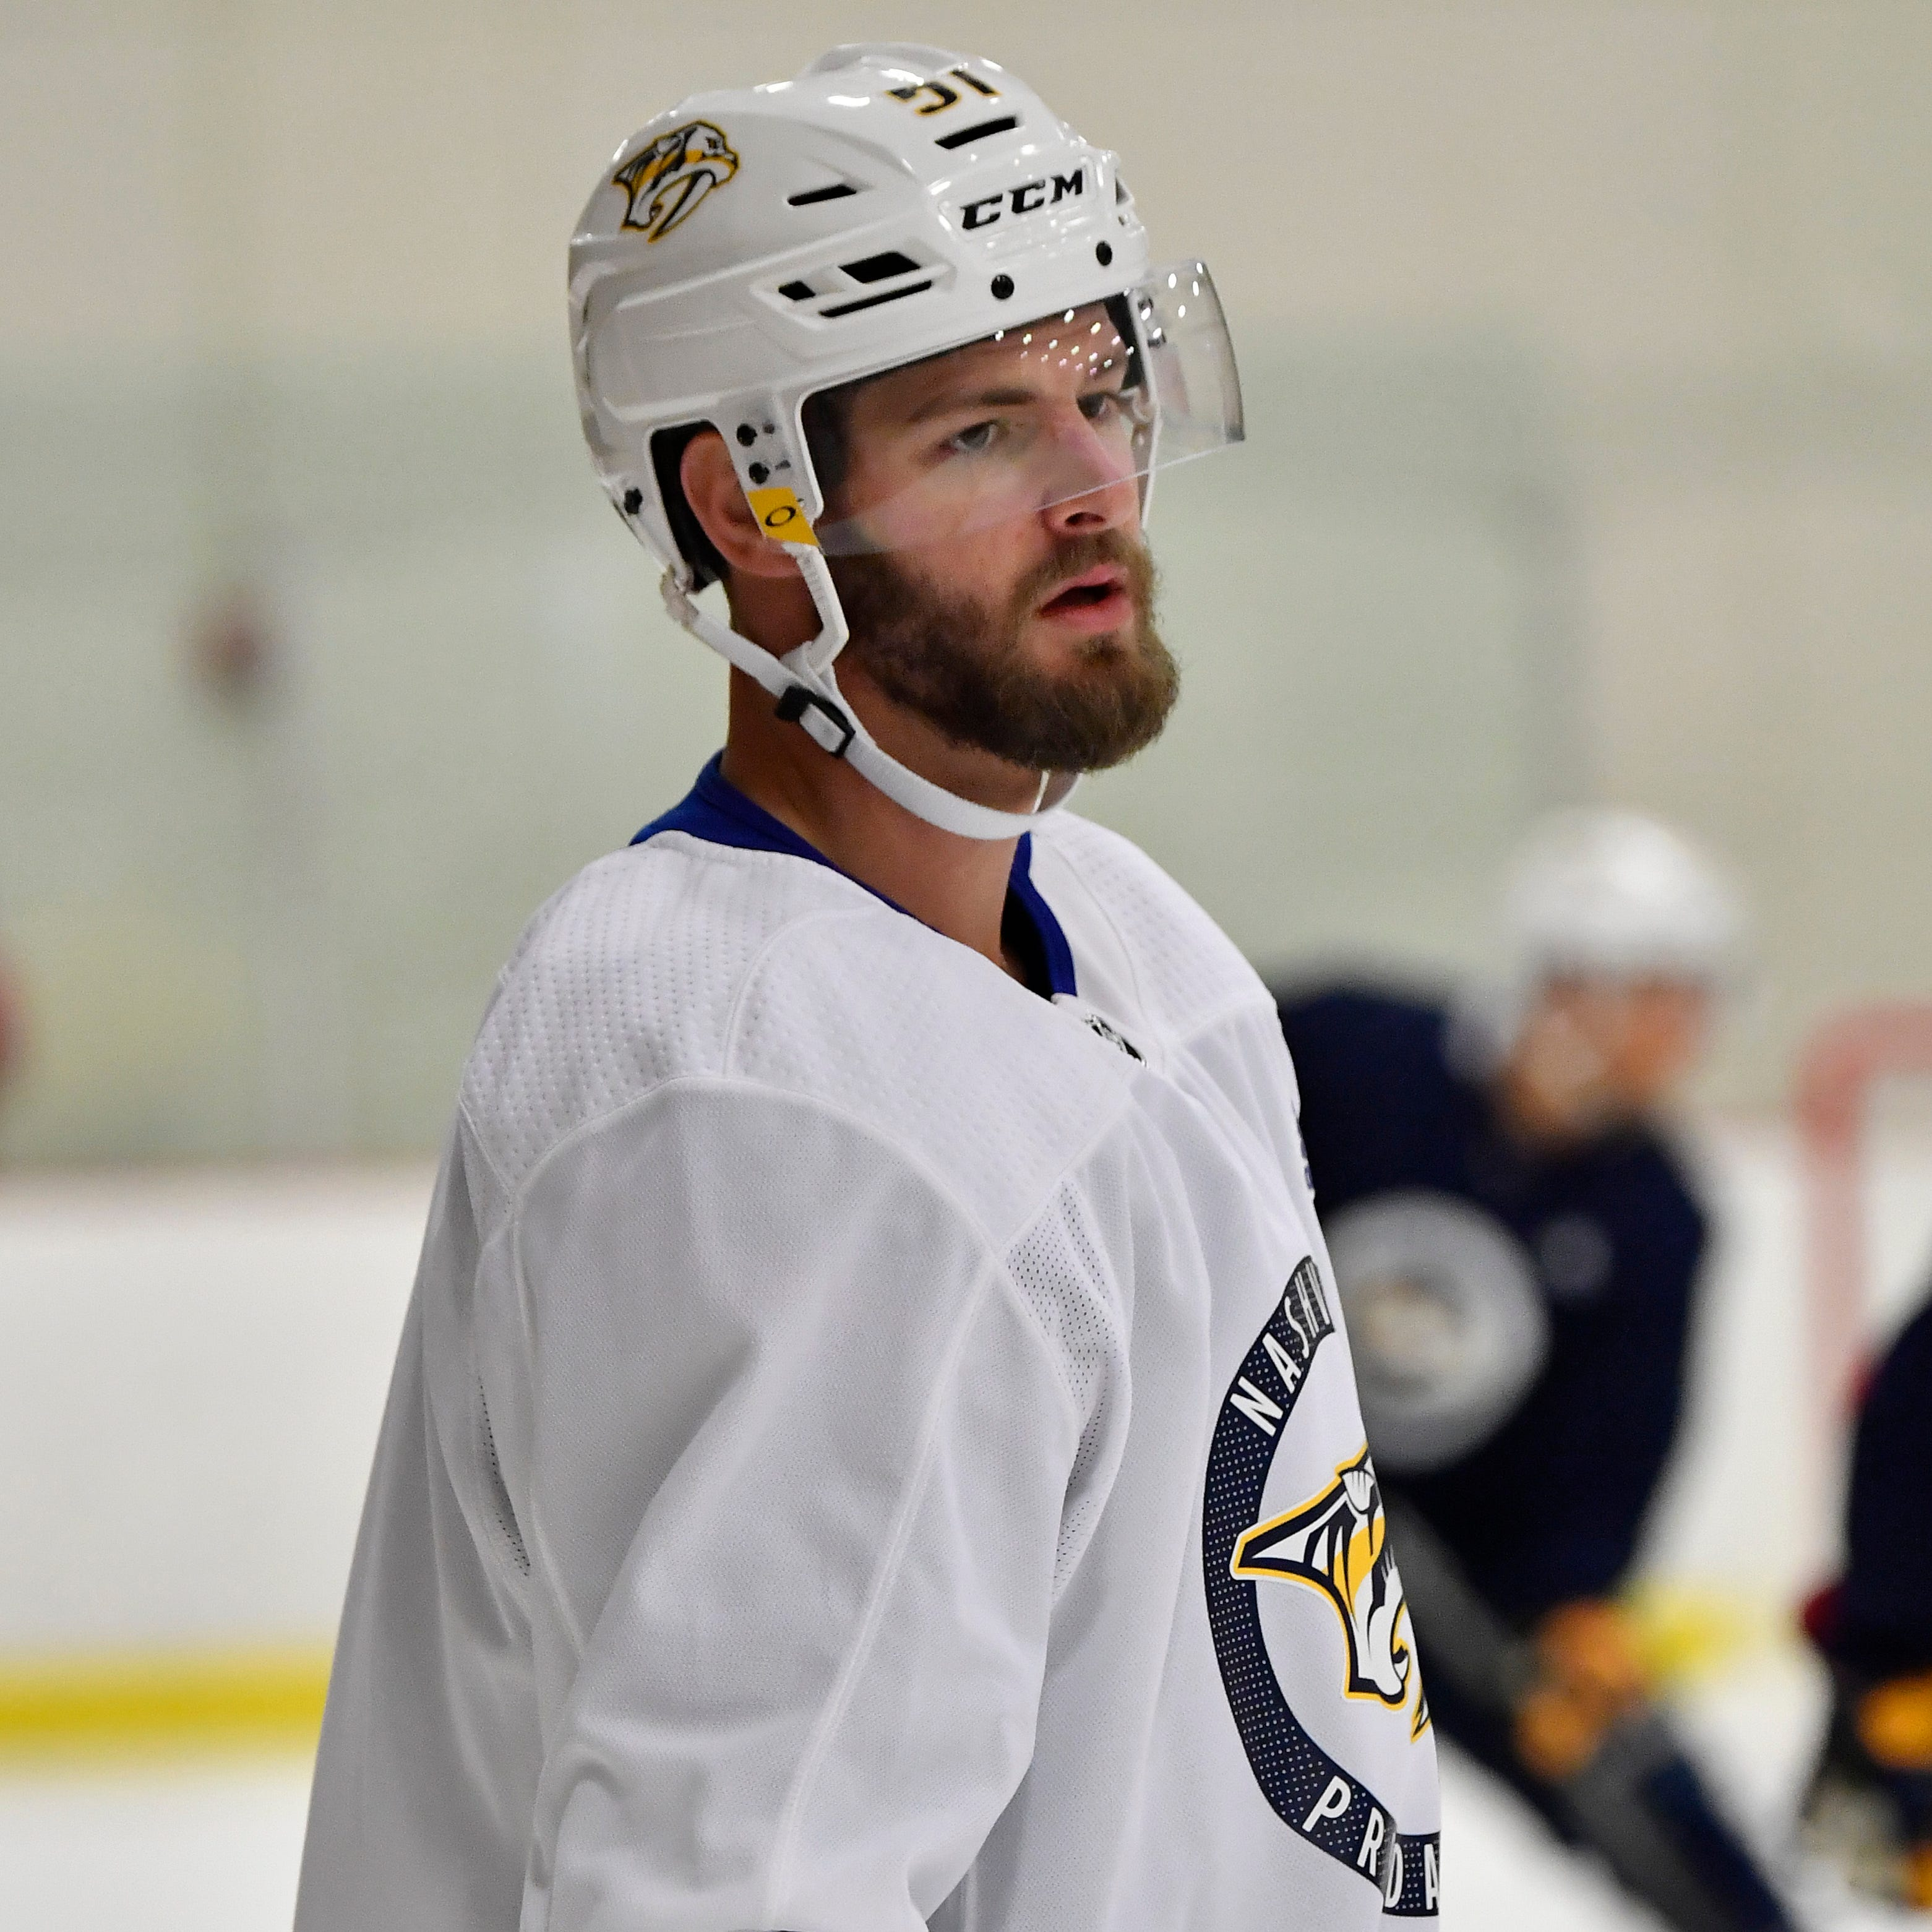 Girlfriend of Predators' Austin Watson says incident 'not an act of domestic violence'